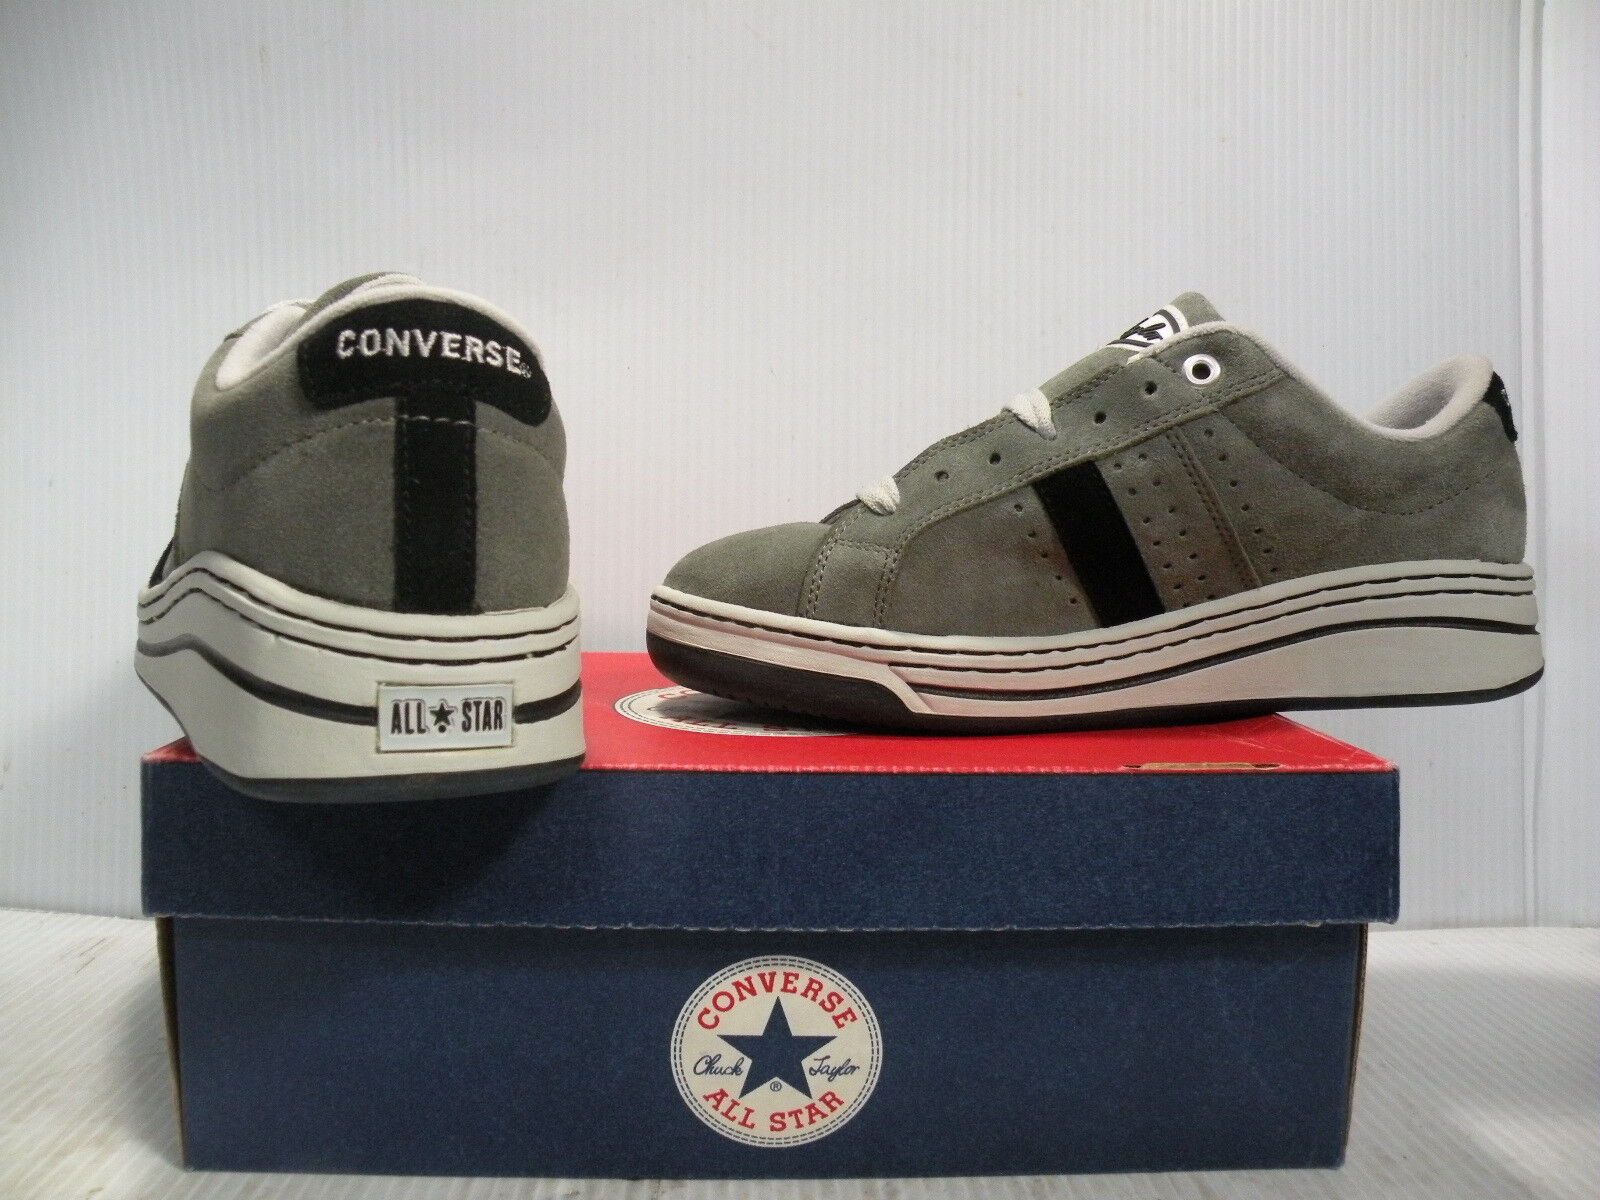 CONVERSE ATHLETIC 12773 MATCH-UP OX SUEDE SKATE VINTAGE Uomo SCARPE 12773 ATHLETIC SIZE 9 NEW 5ef2e6